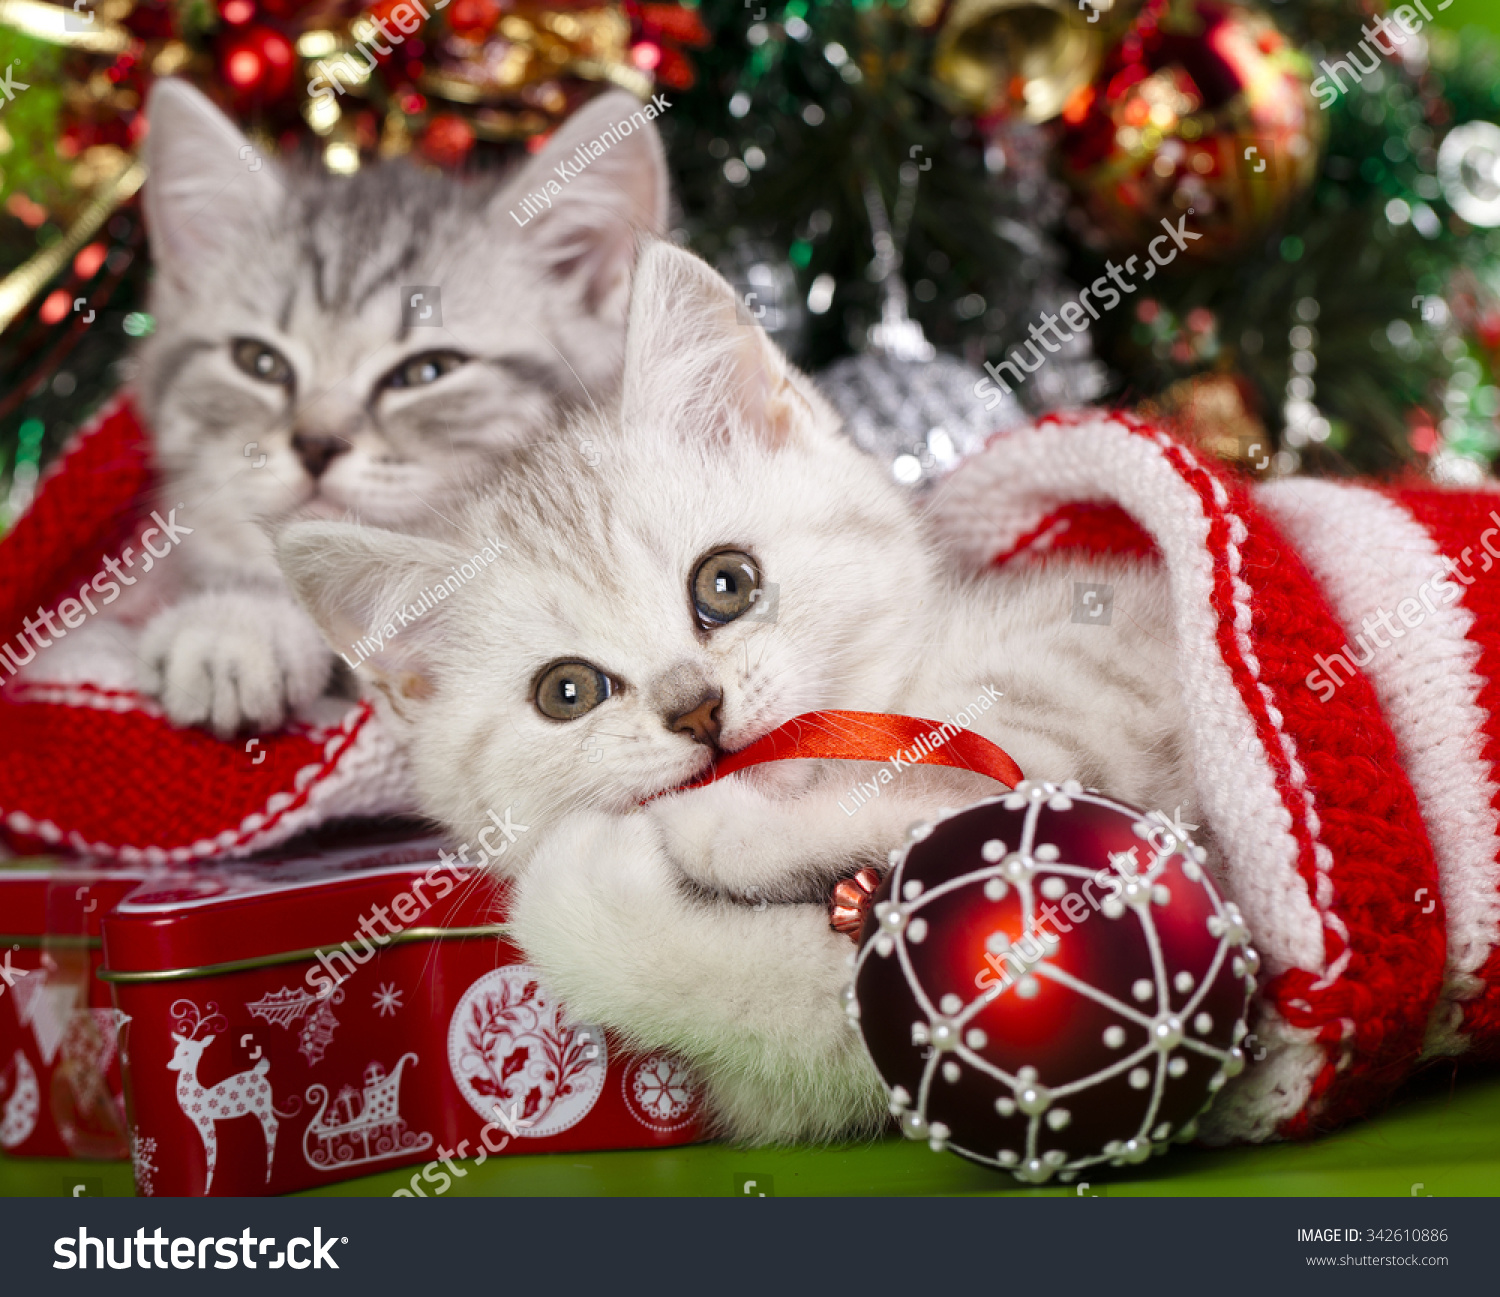 Christmas Kittens Stock Photo (Edit Now) 342610886 - Shutterstock